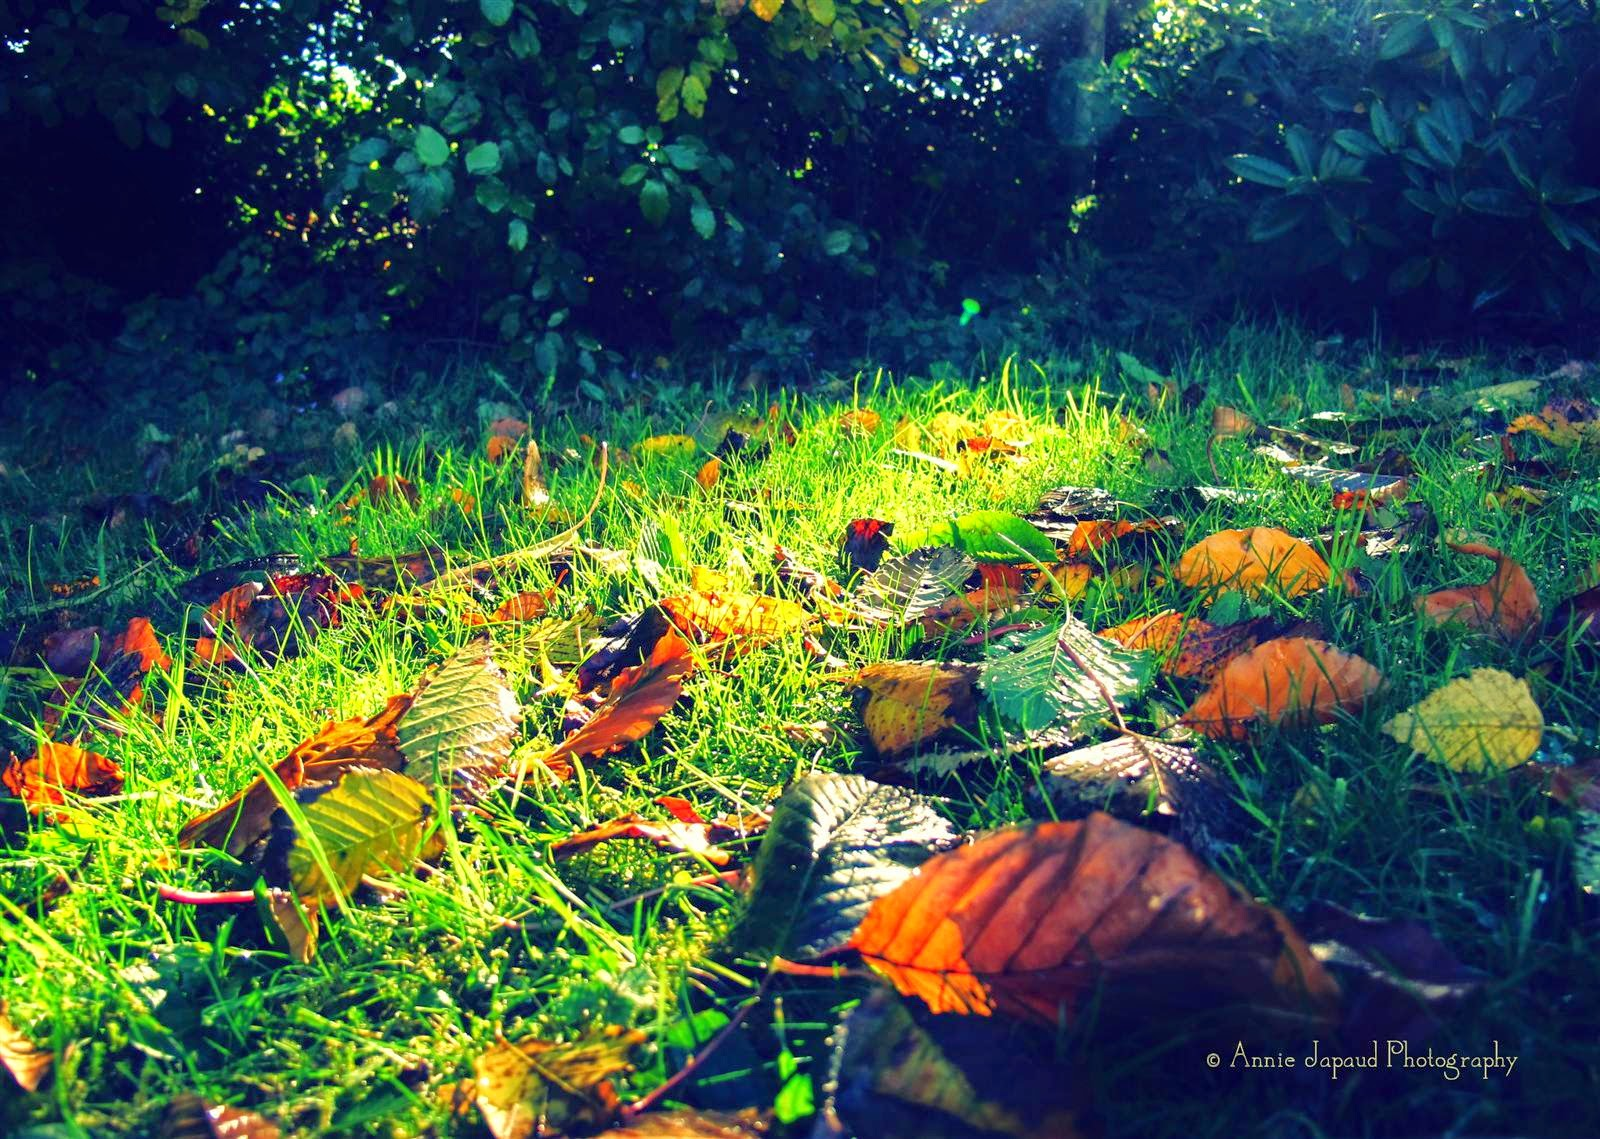 autumn, leaves on grass, light